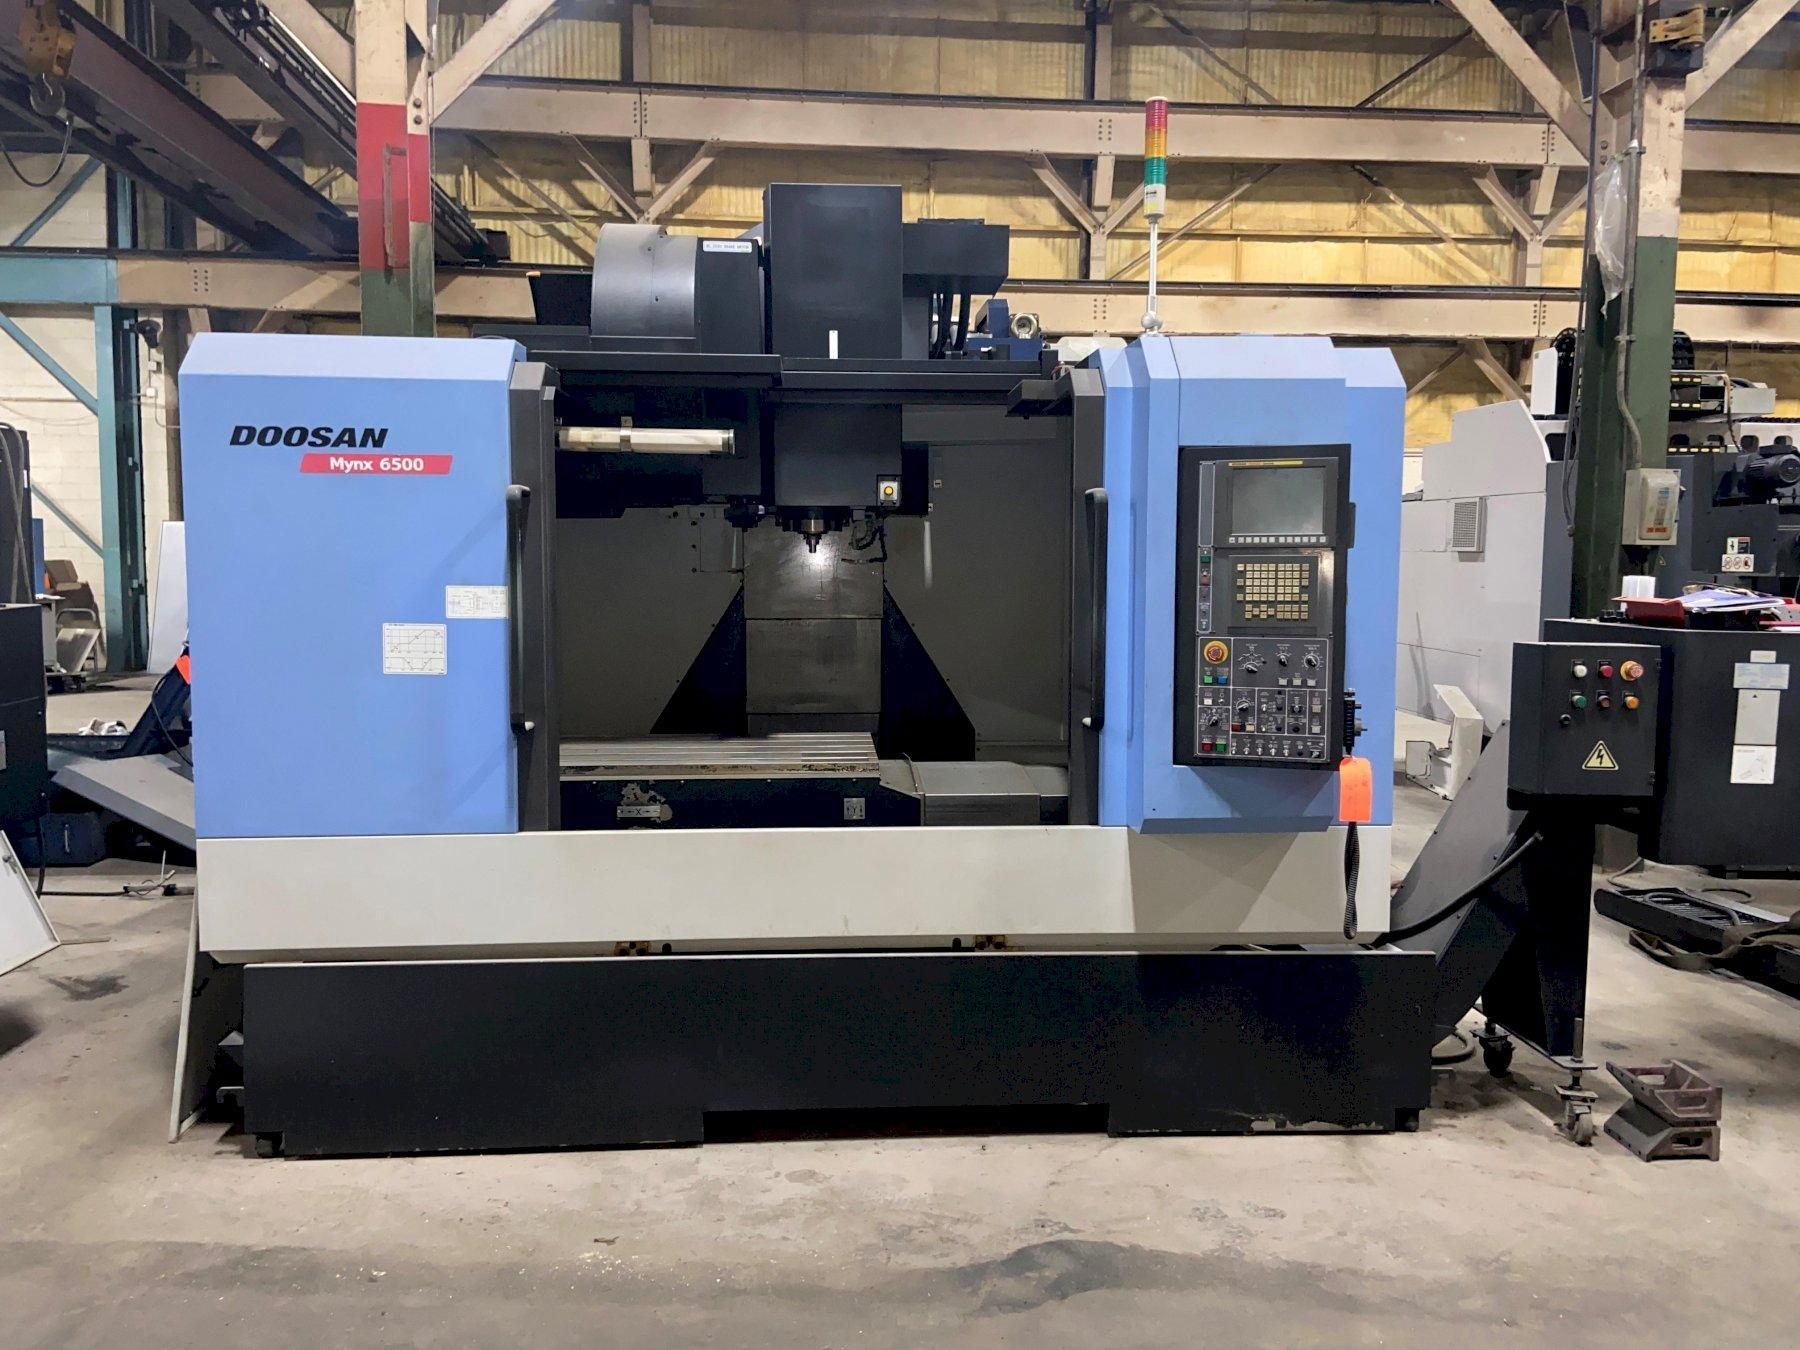 Doosan Mynx 6500 CNC Vertical Machining Center, Fanuc Series i, 50